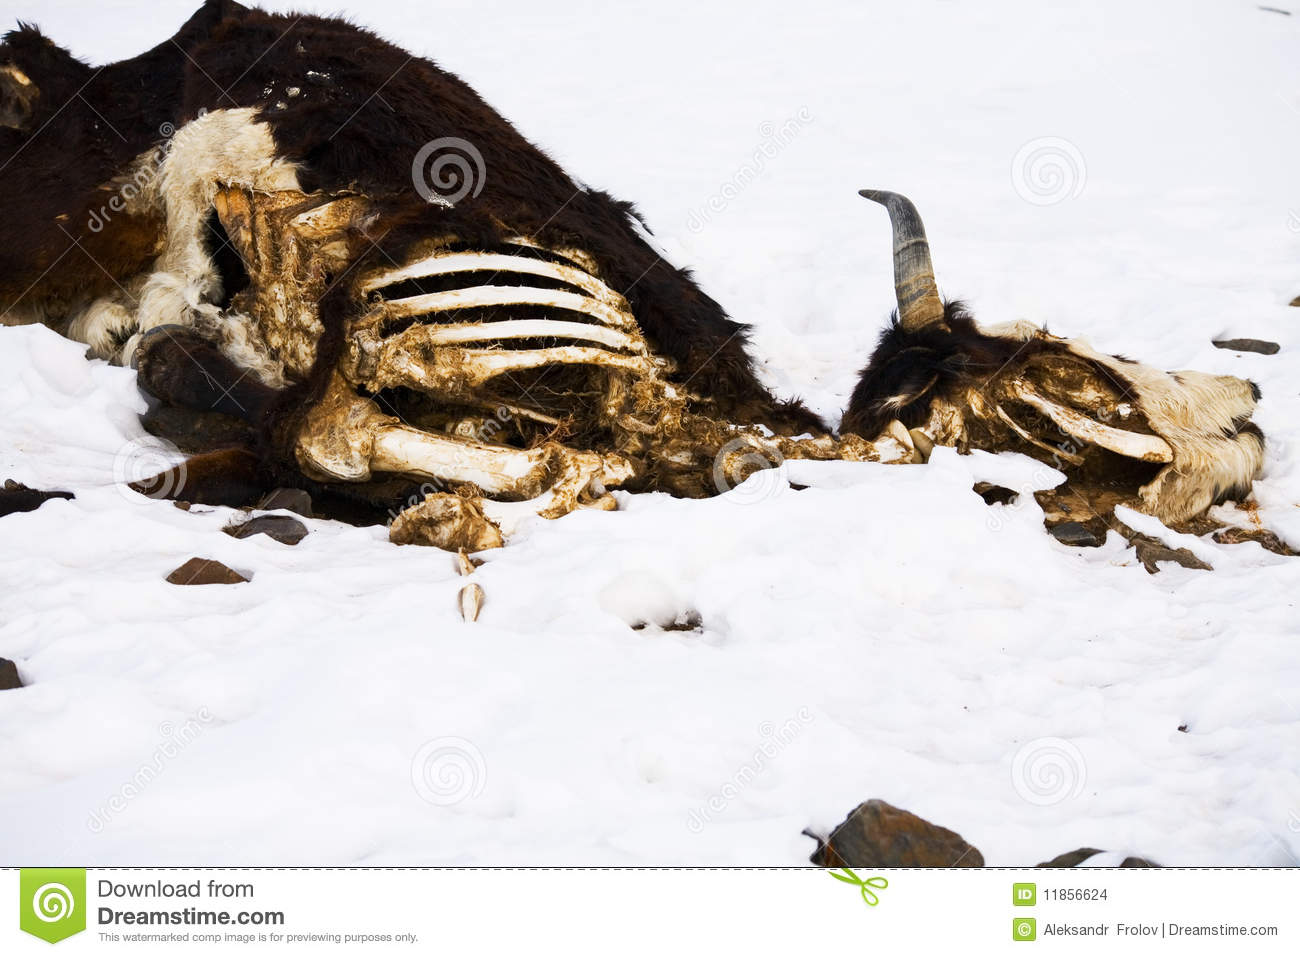 Decomposing animal clipart.